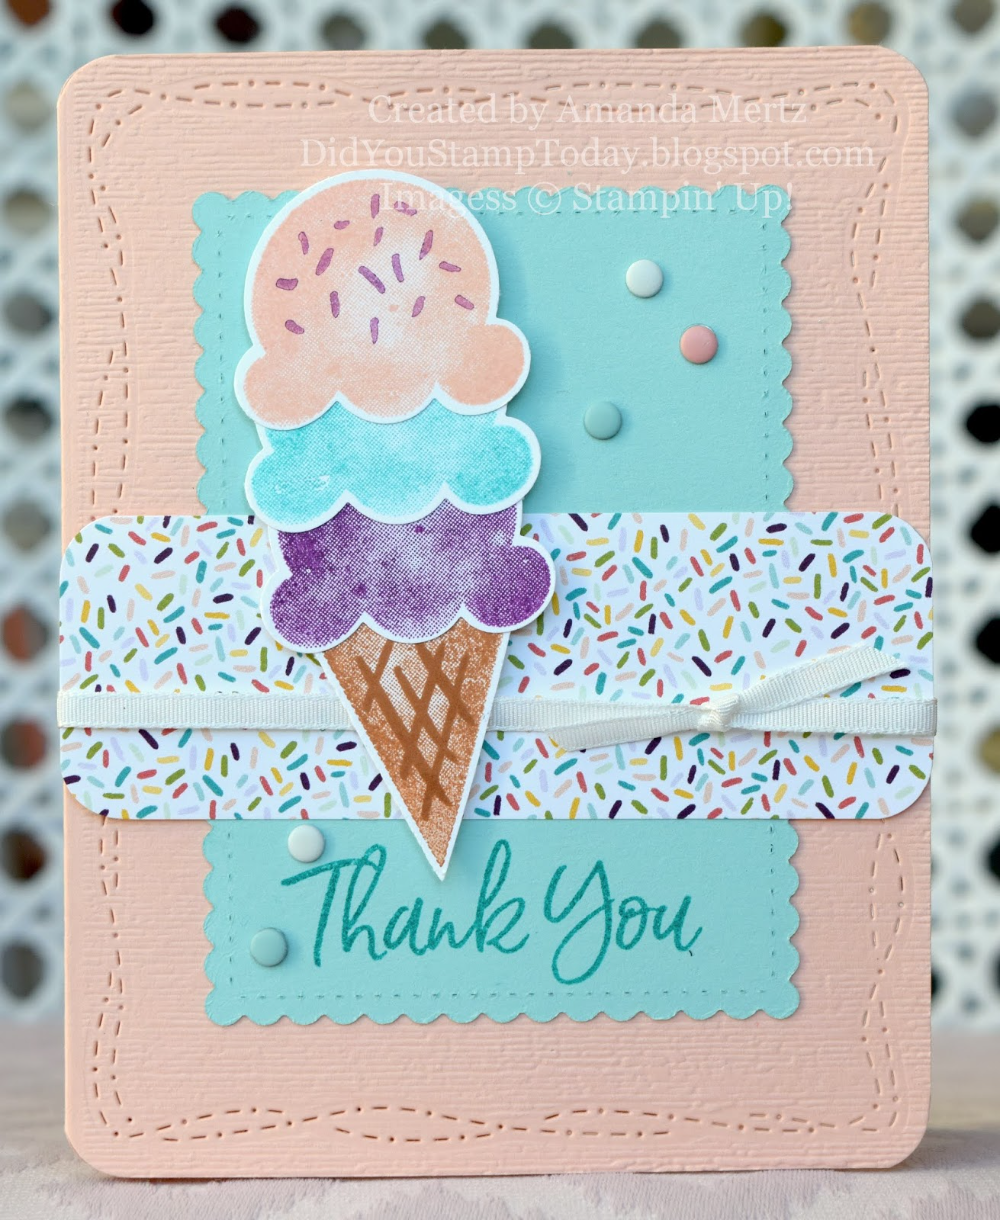 Sweet Thank You - Stampin' Up! Sweet Ice Cream